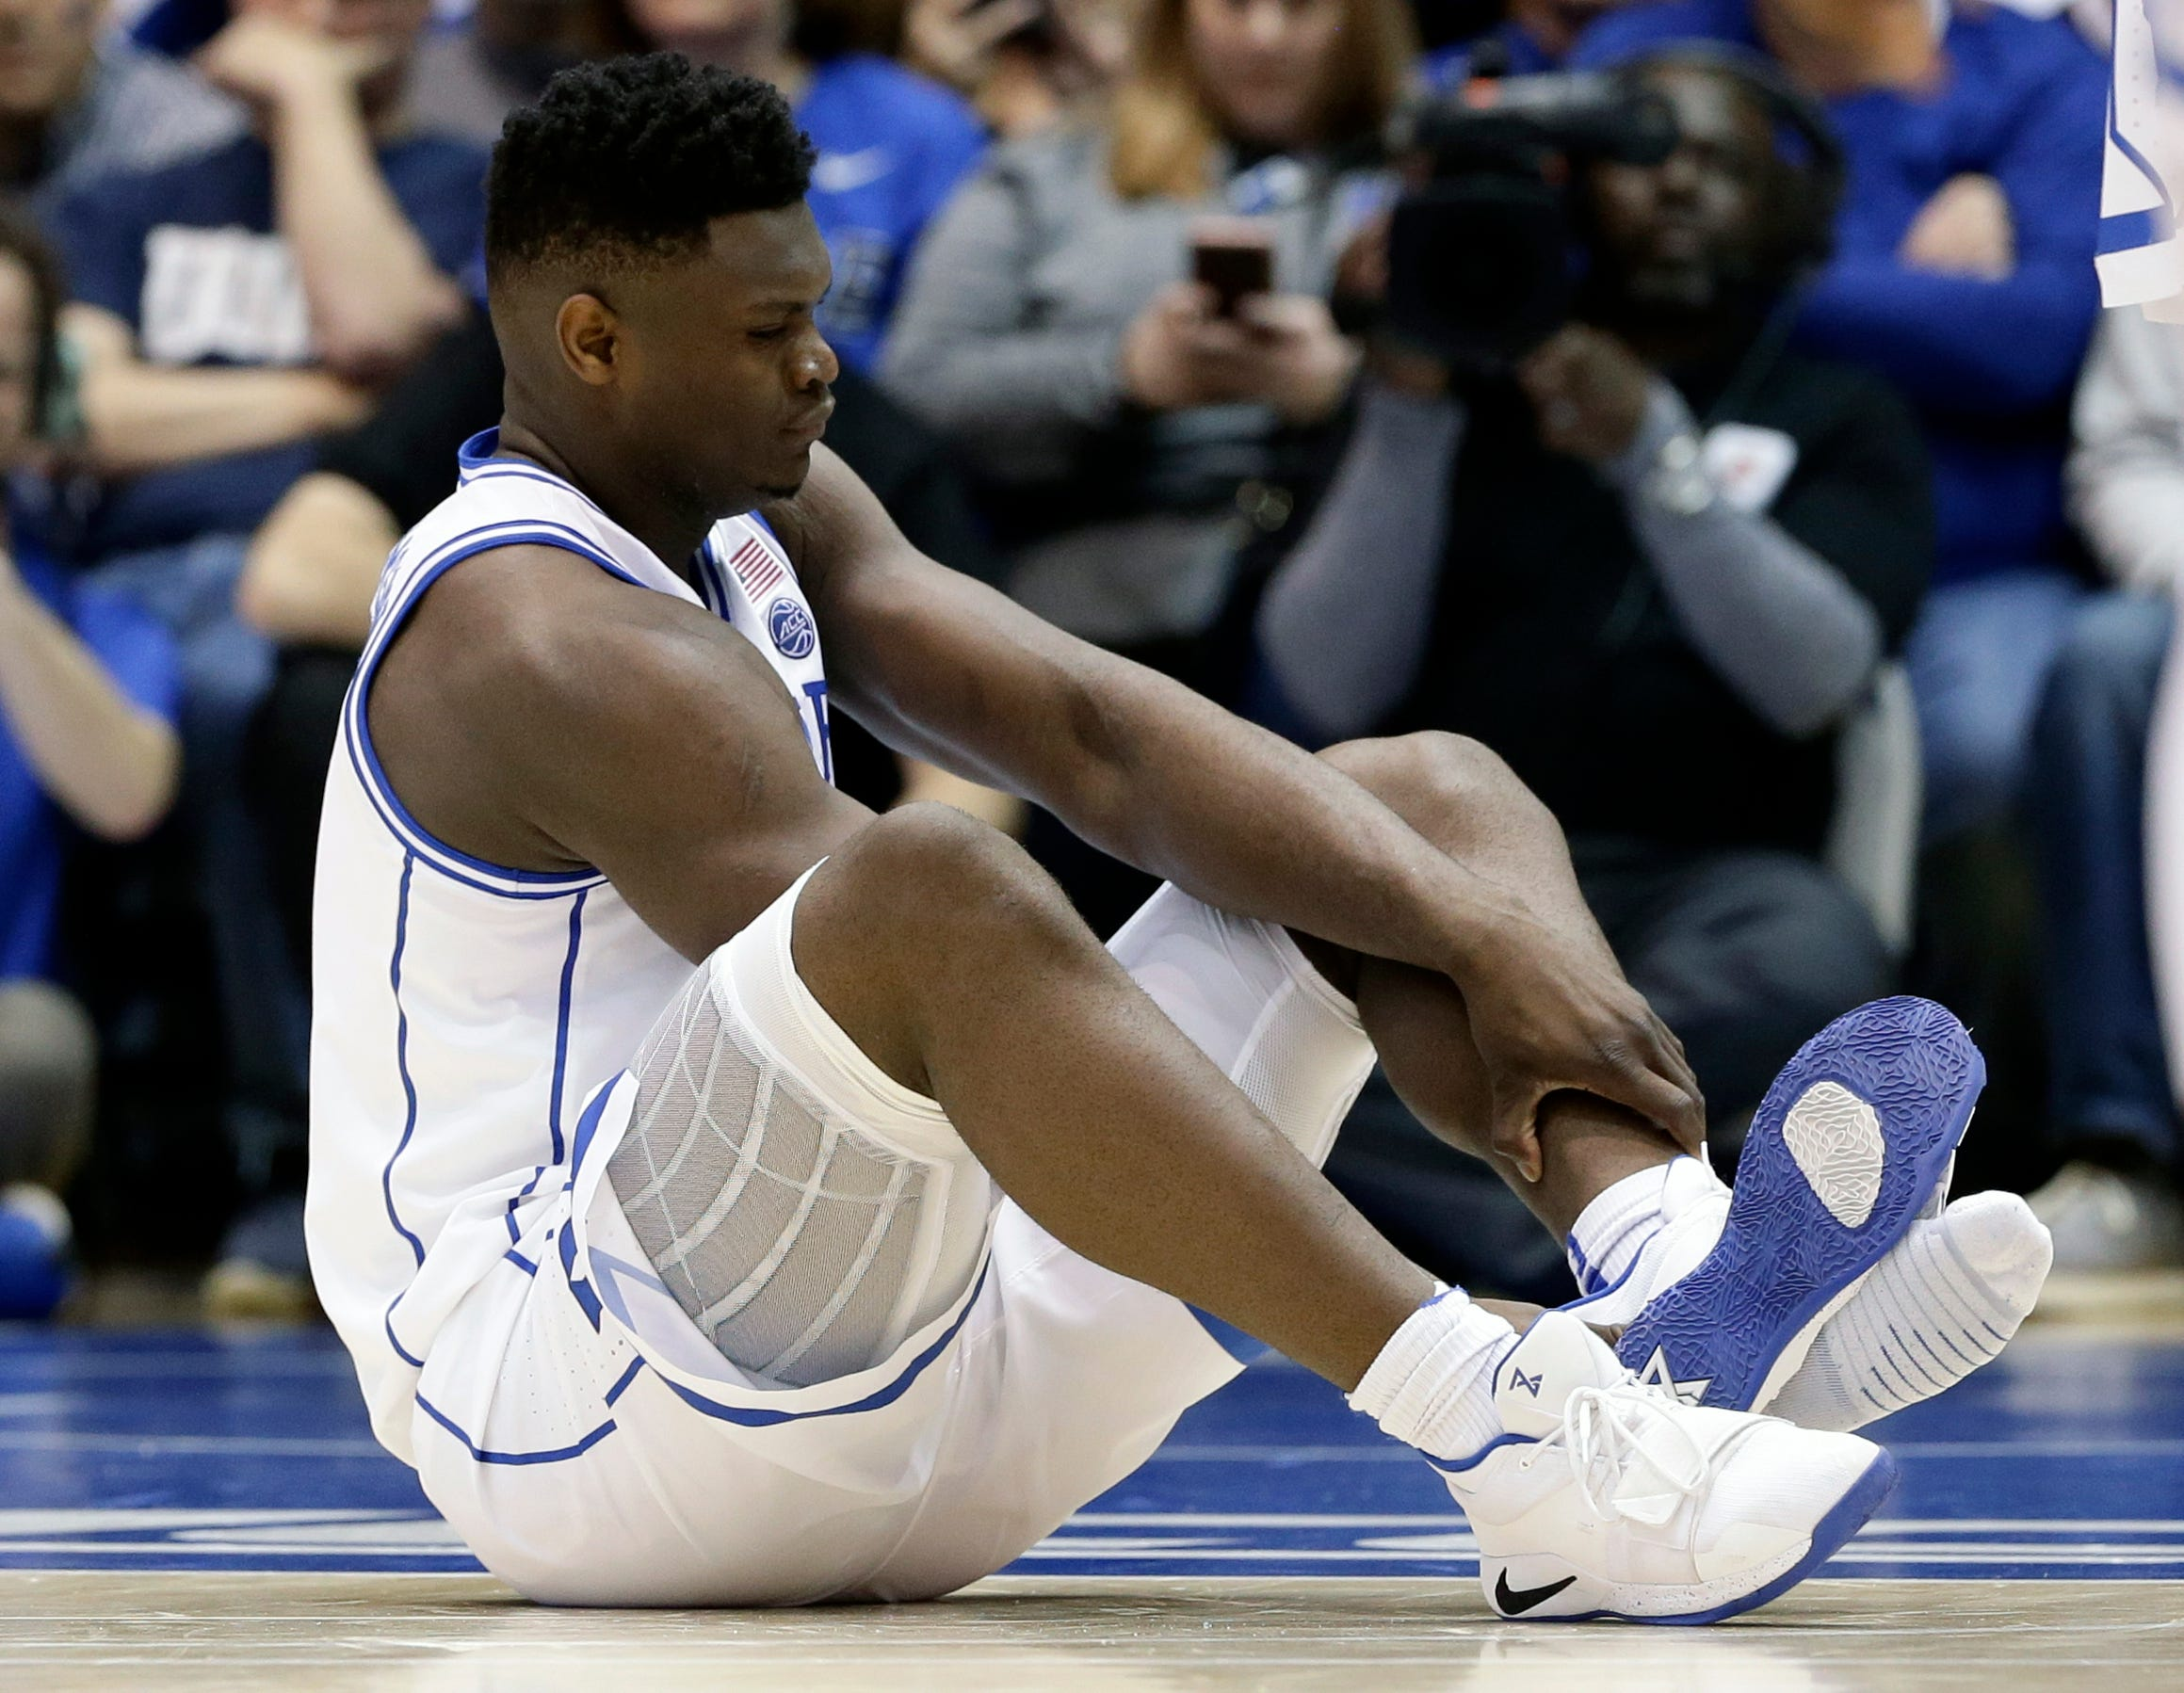 Why Zion Williamson's shoe blowout wasn